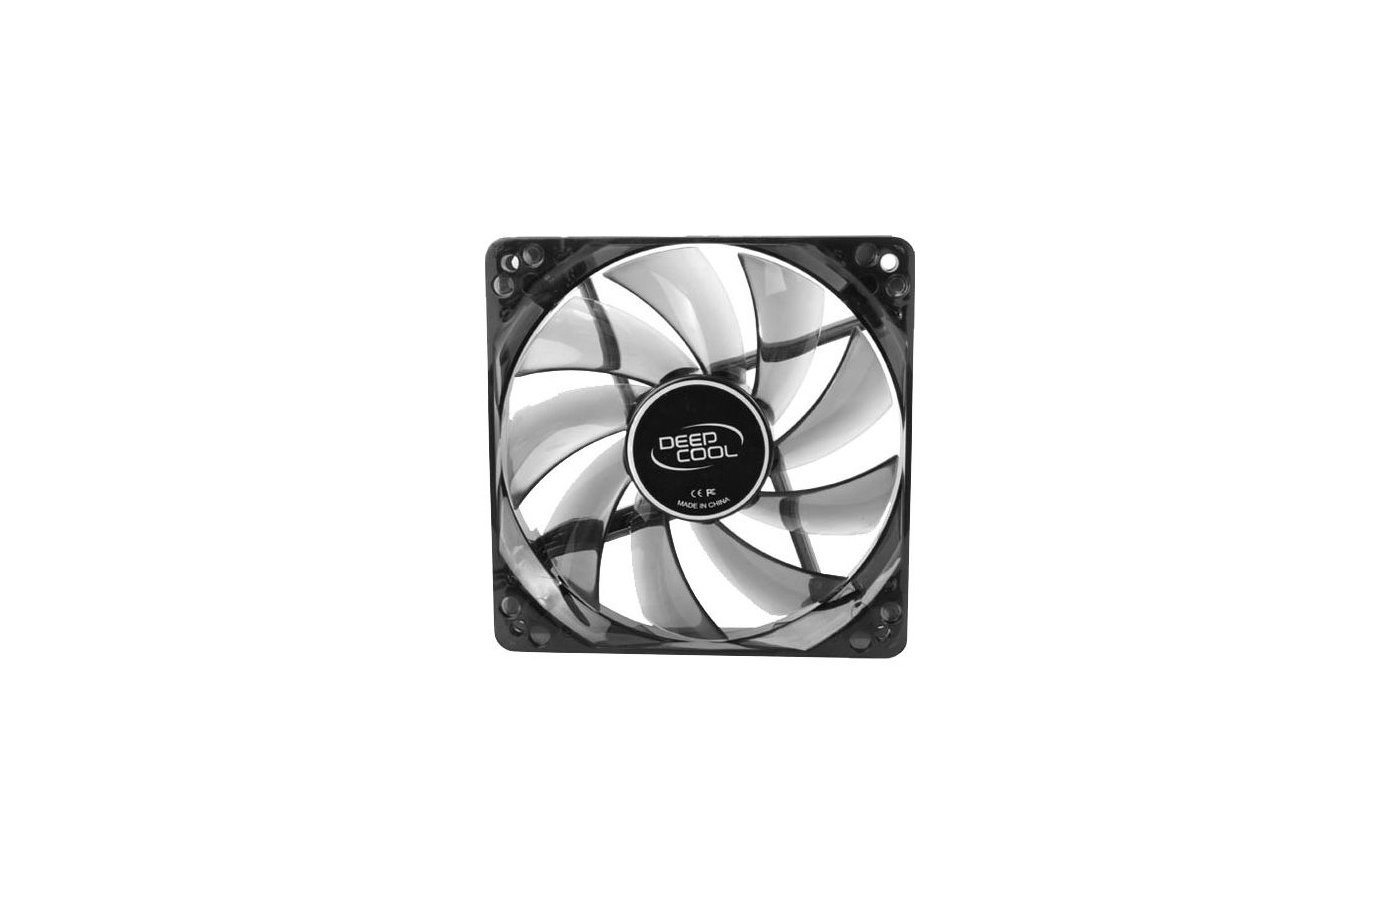 Охлаждение Deepcool WIND BLADE 120 120x120x25 3pin 27dB 1300rpm 119g голубой LED для корпуса